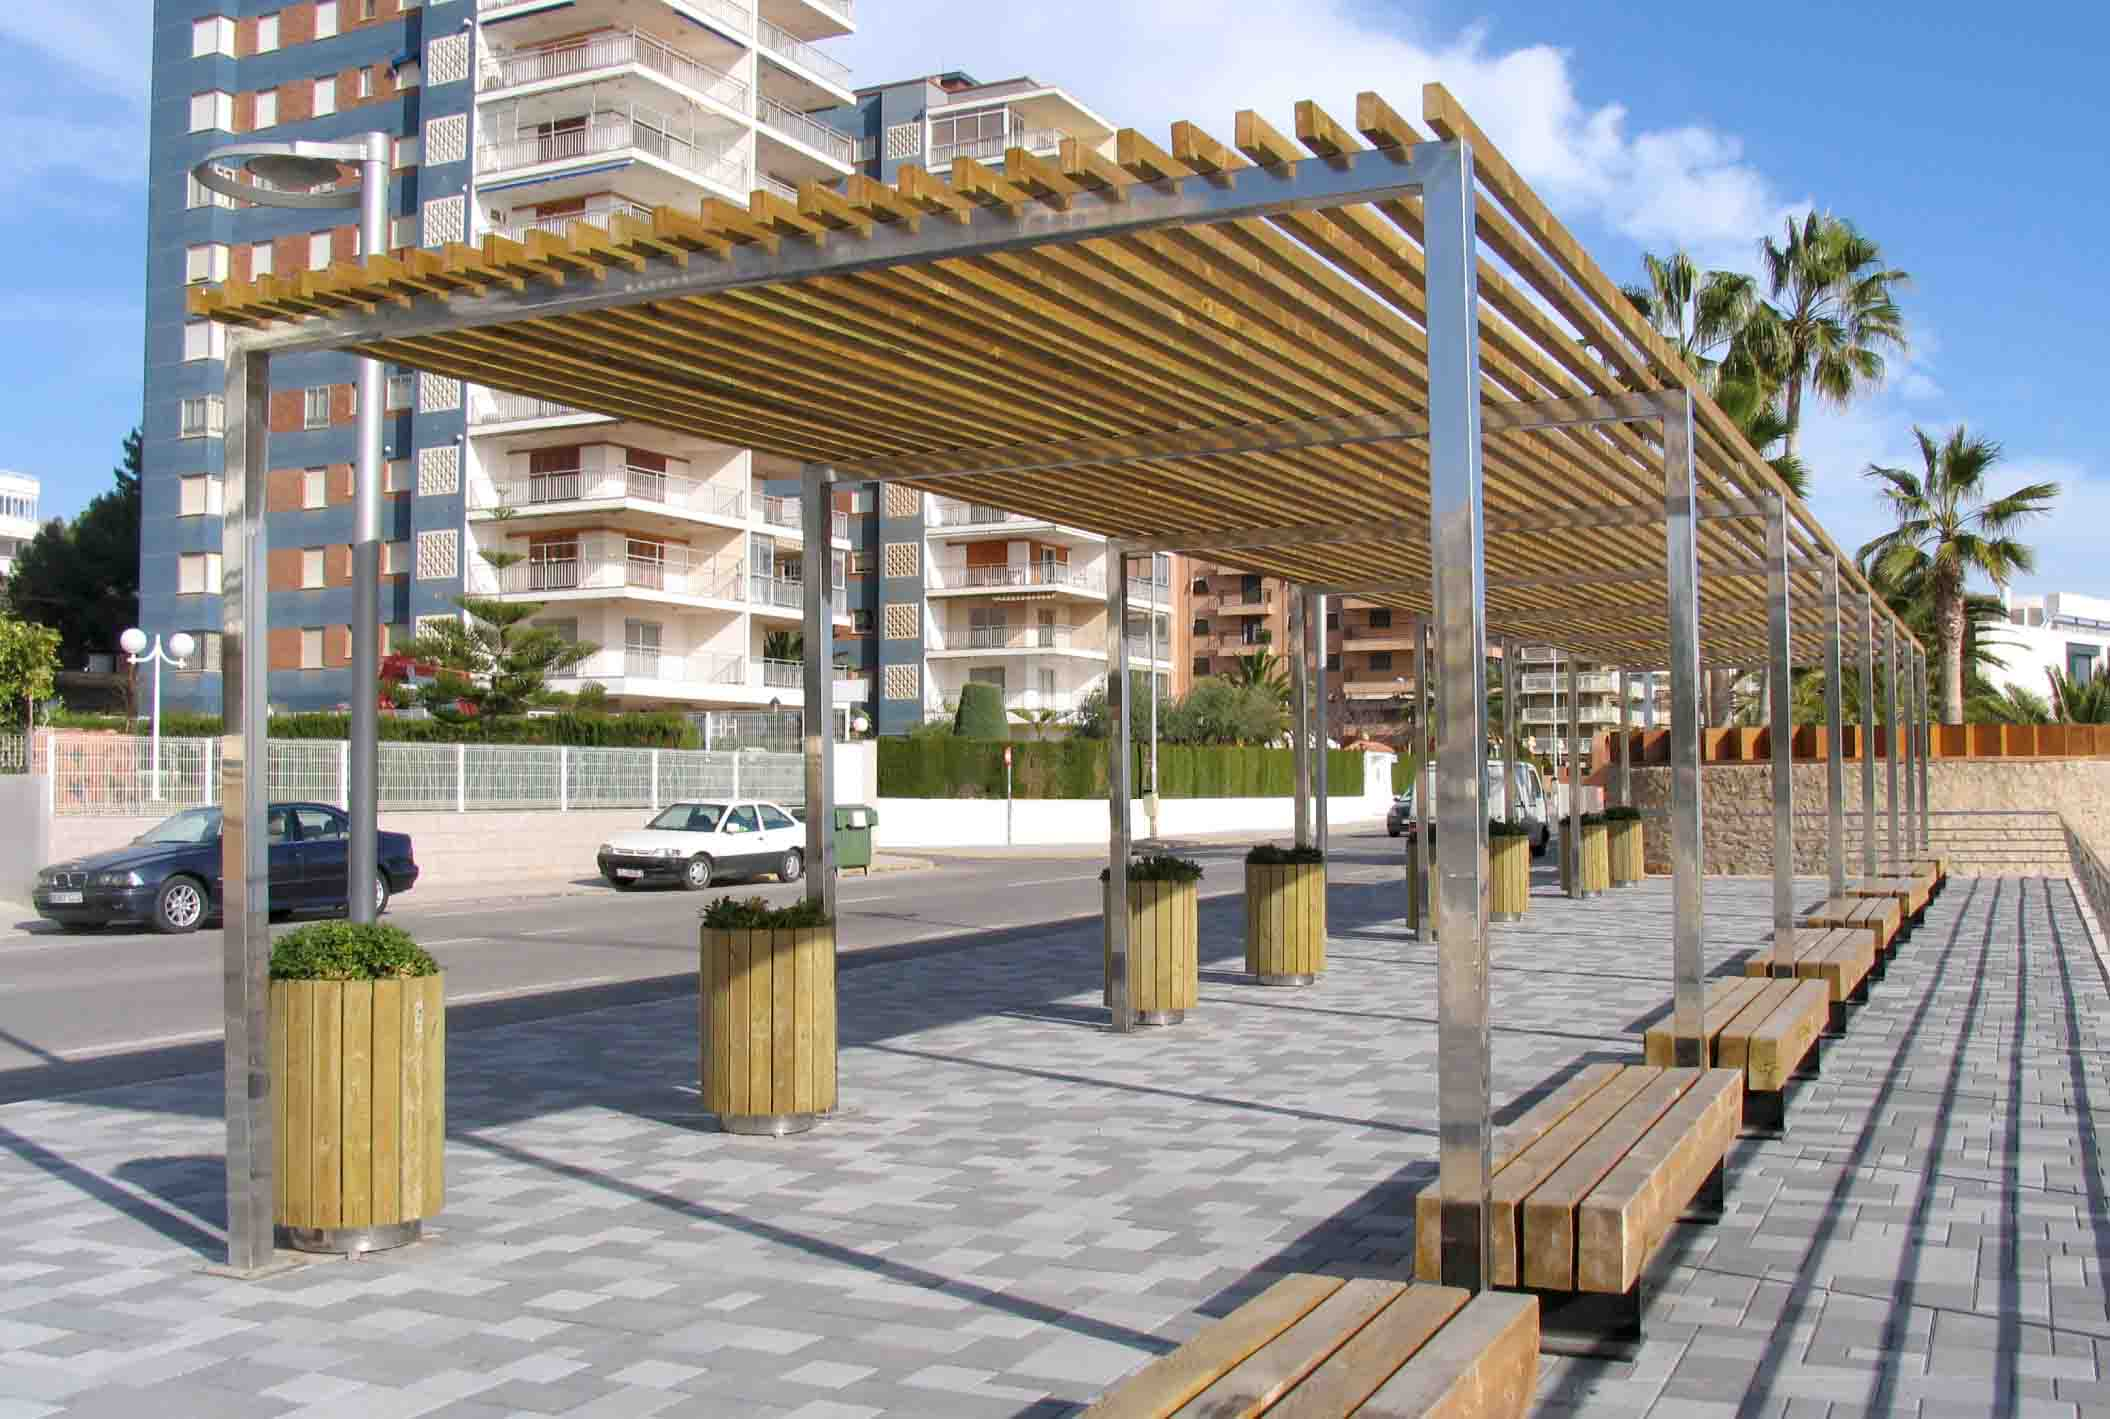 Pergola of wood and steel at a seafront